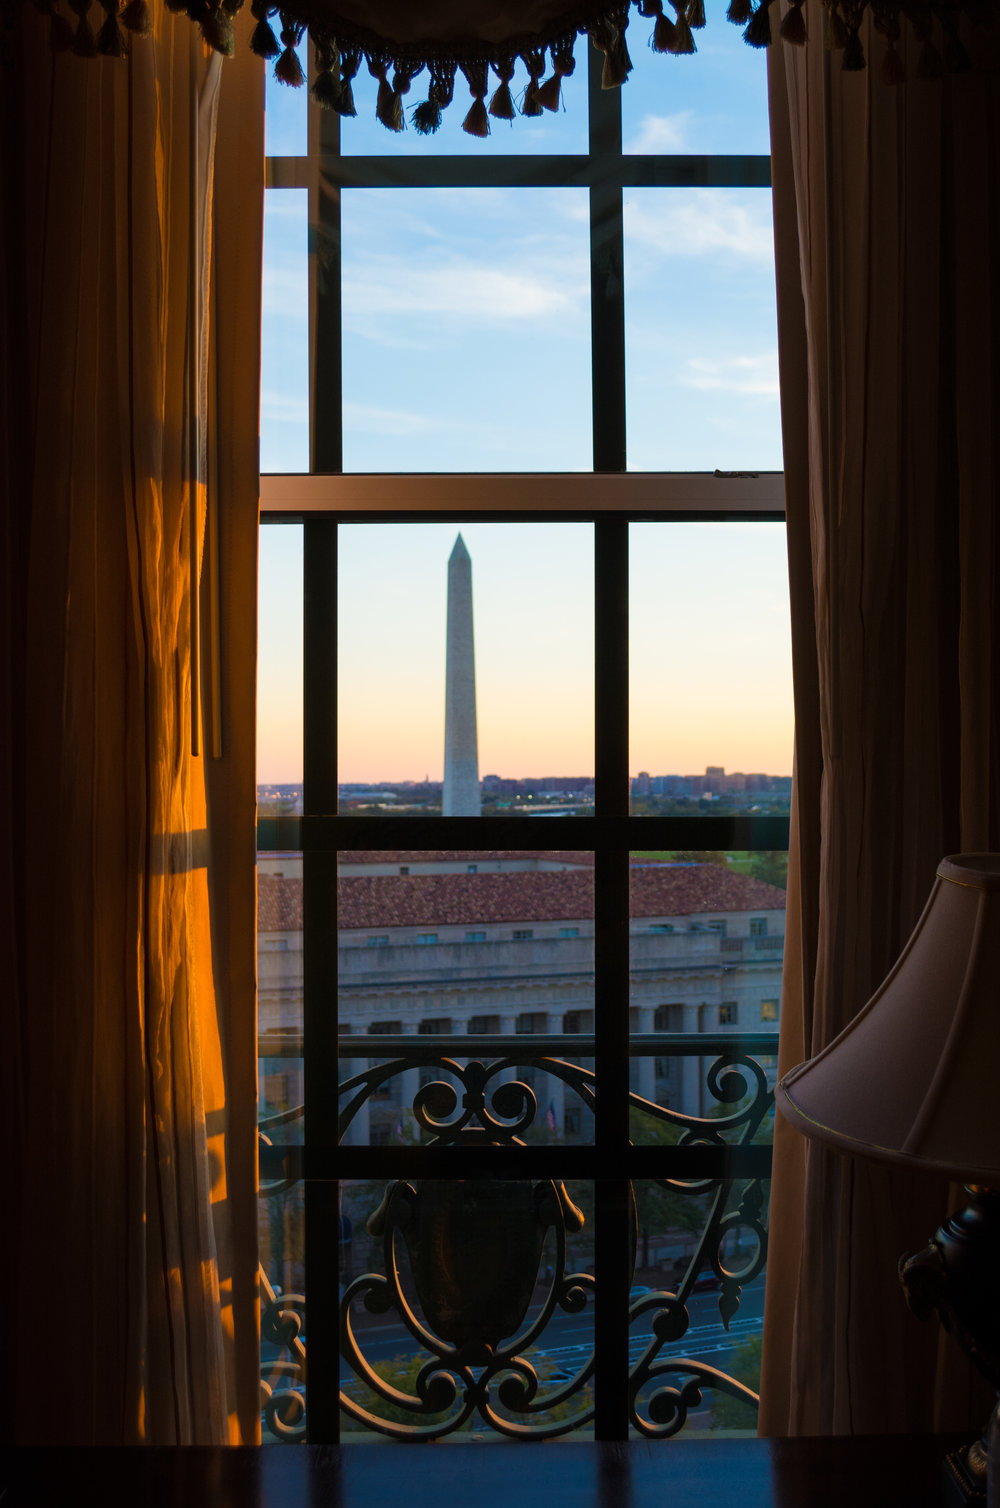 The Willard InterContinental | Otter Expedition: Washington, D.C. | The Modern Otter